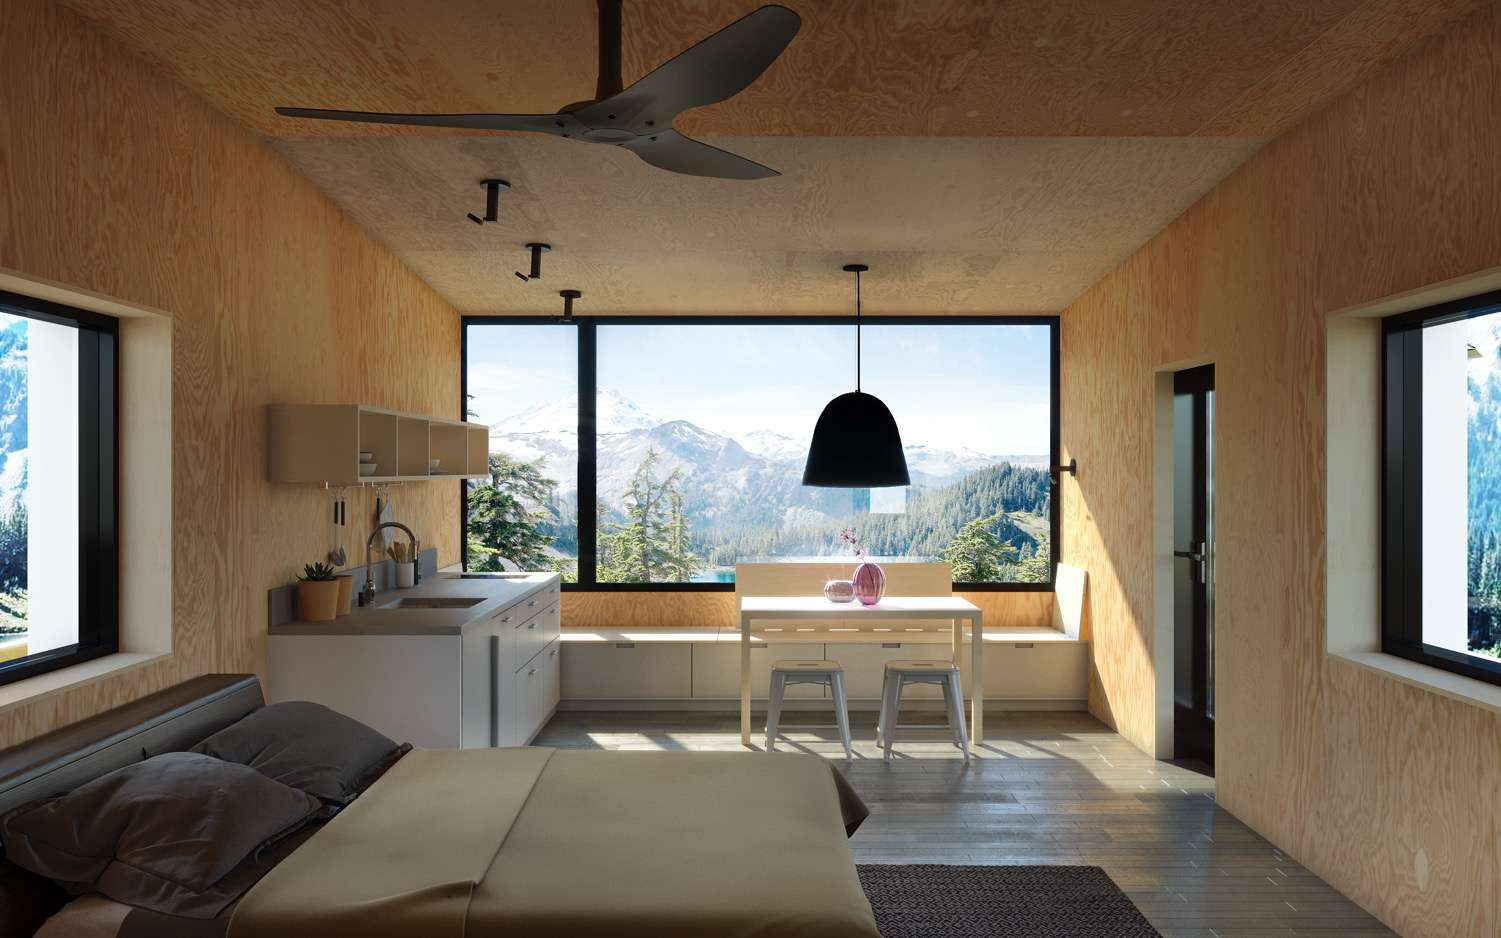 L1 unit interior with wood texture walls, a large window, and a bed in the foreground